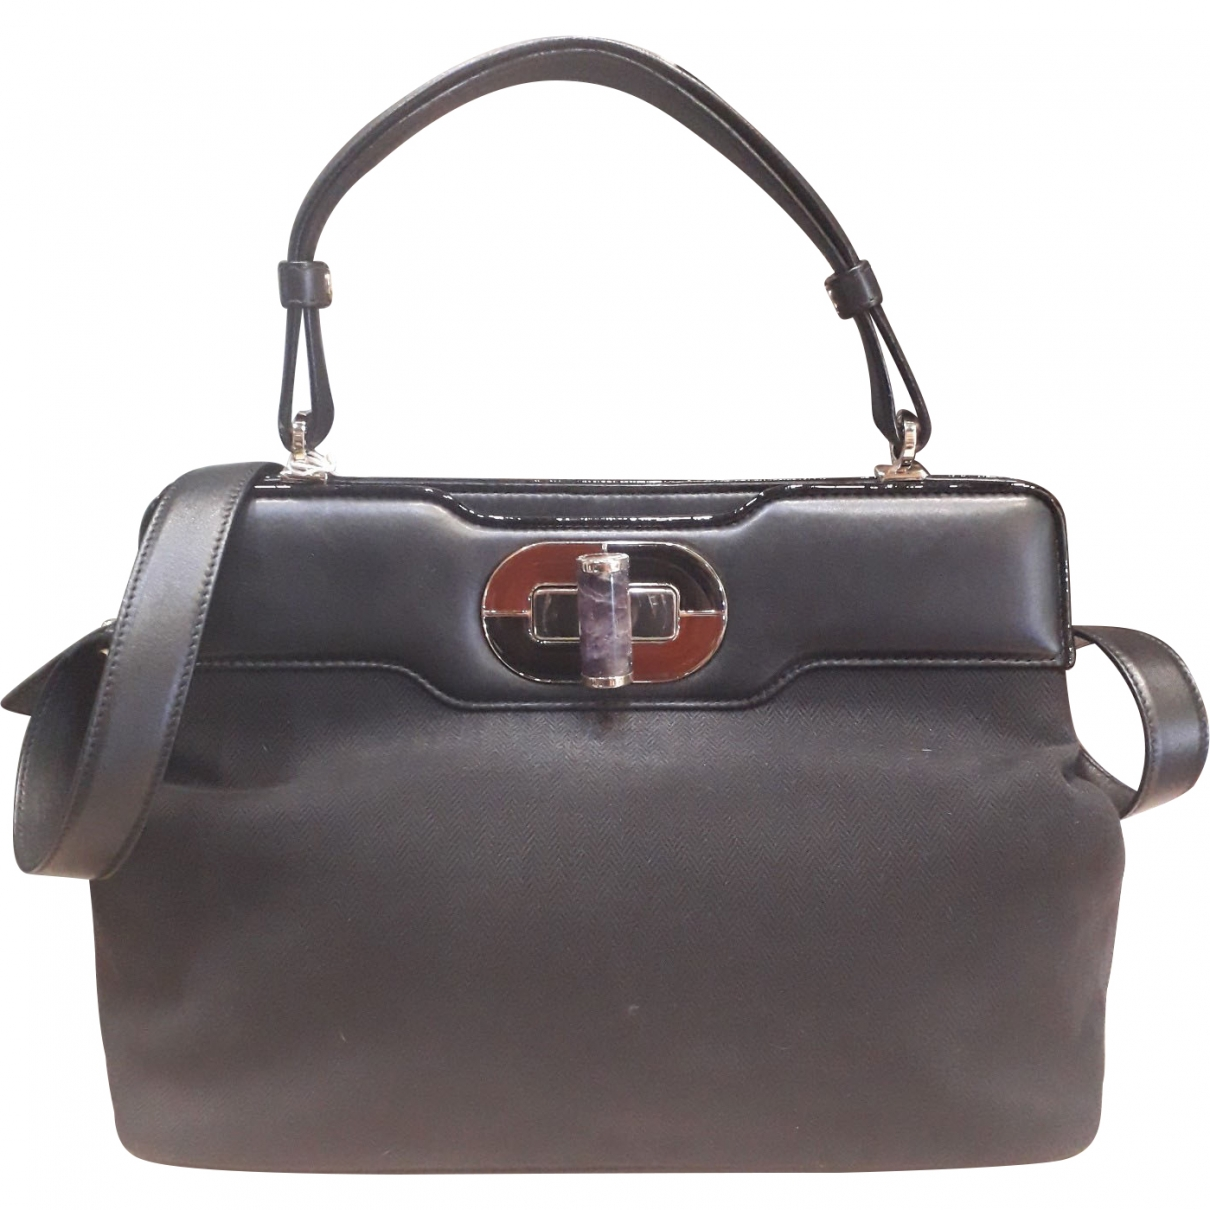 Bvlgari \N Black Cloth handbag for Women \N